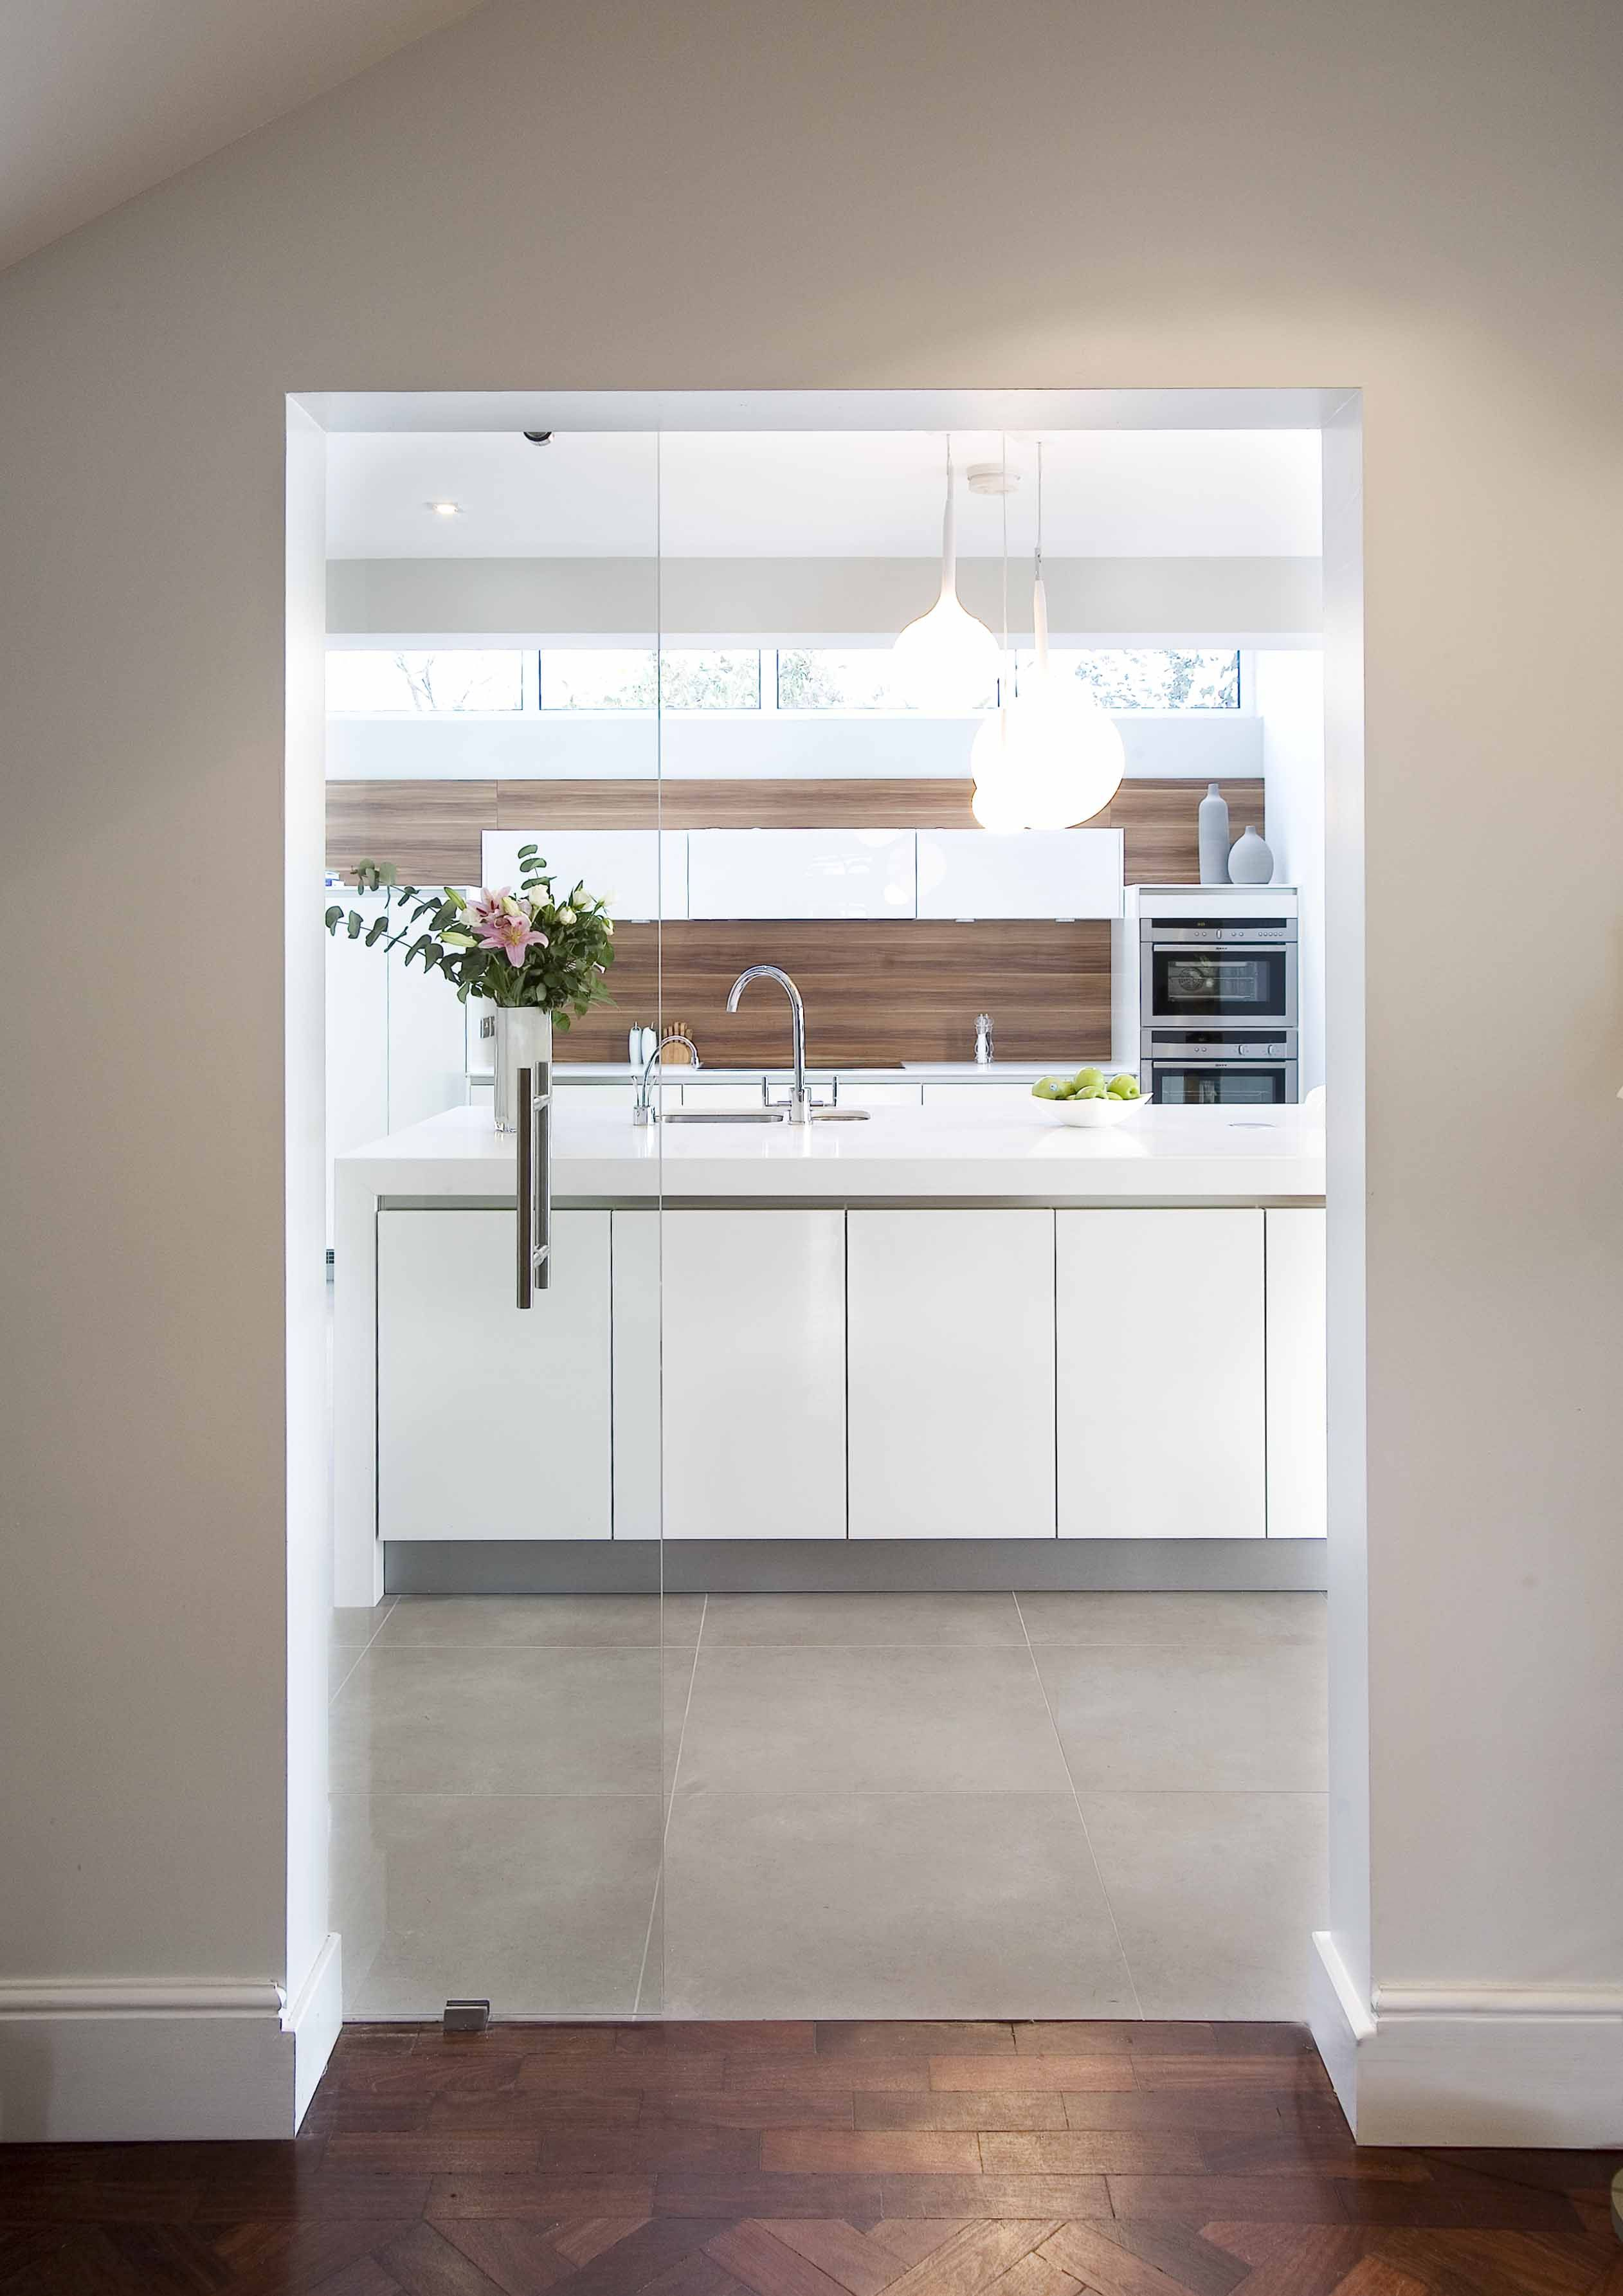 Parkes Interiors Award Winning Design Studio Bespoke Designer Kitchens Belfast Northern